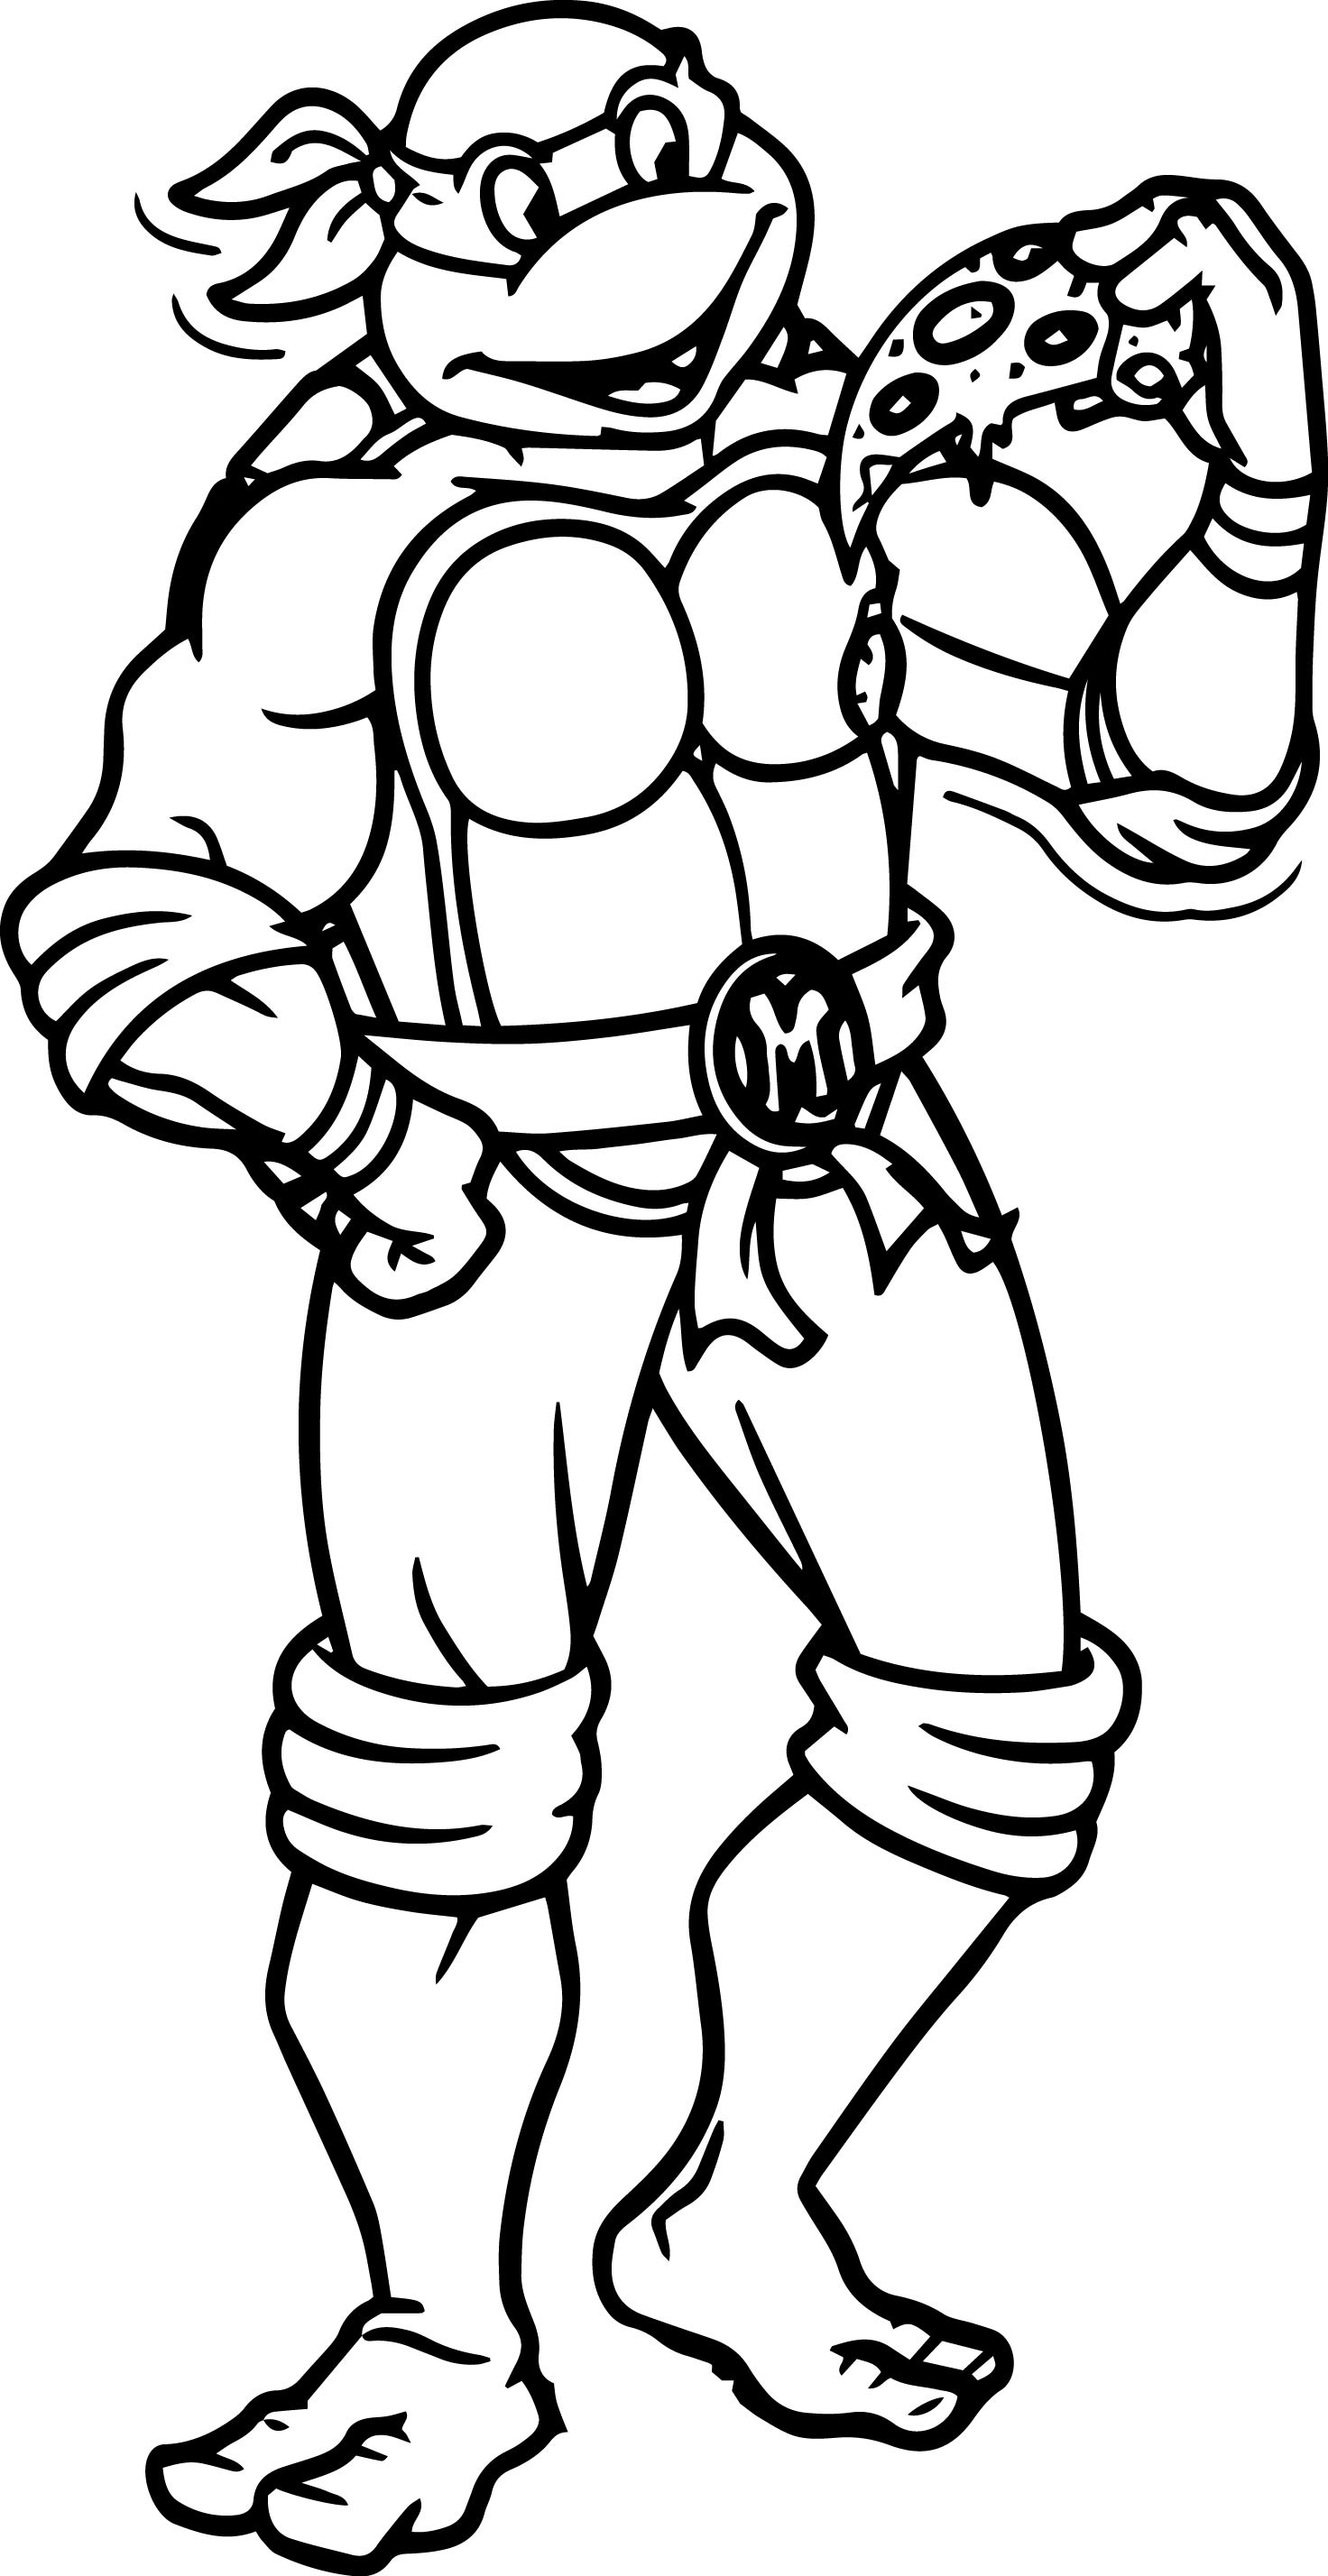 1472x2856 Tested Leonardo Teenage Mutant Ninja Turtles Coloring Pages